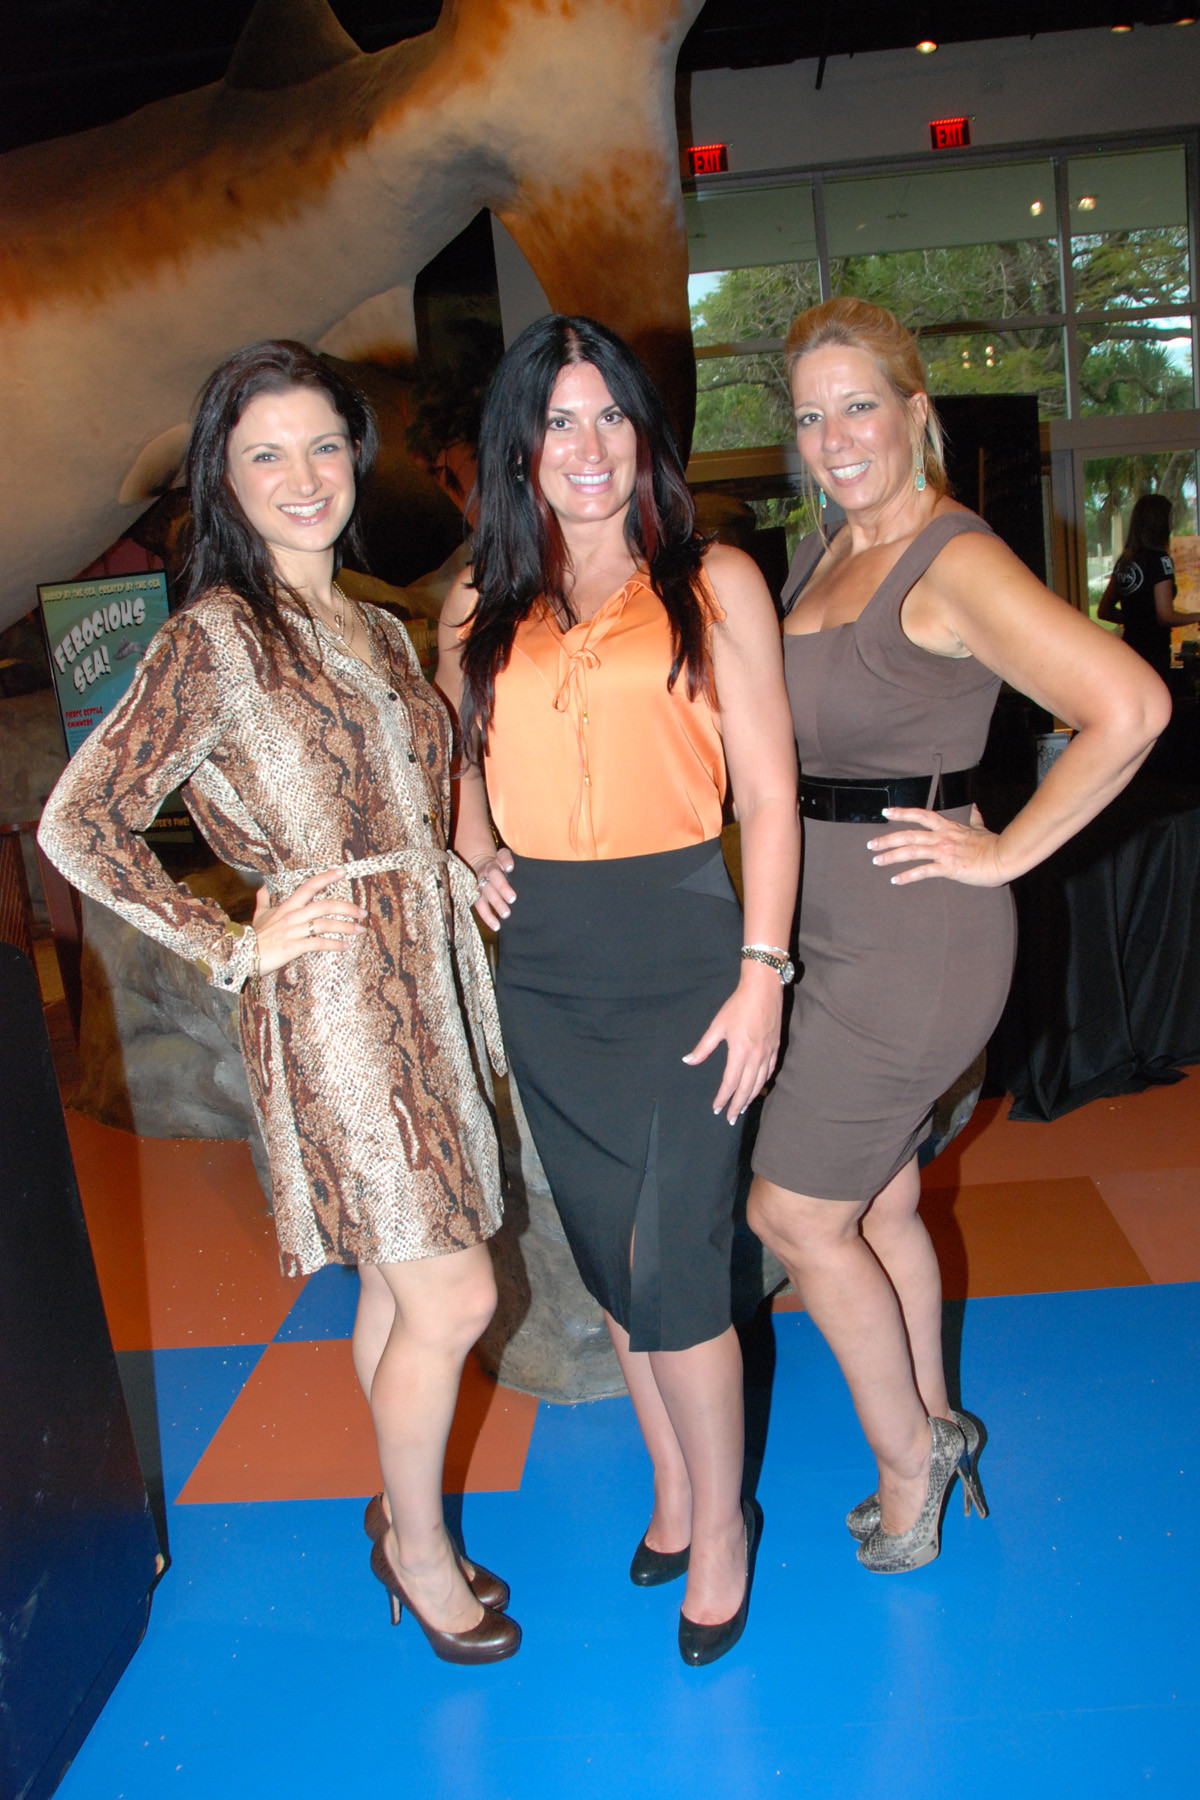 Society Scene photos - Heather Geronemous, Valerie Peru and Alice Harry